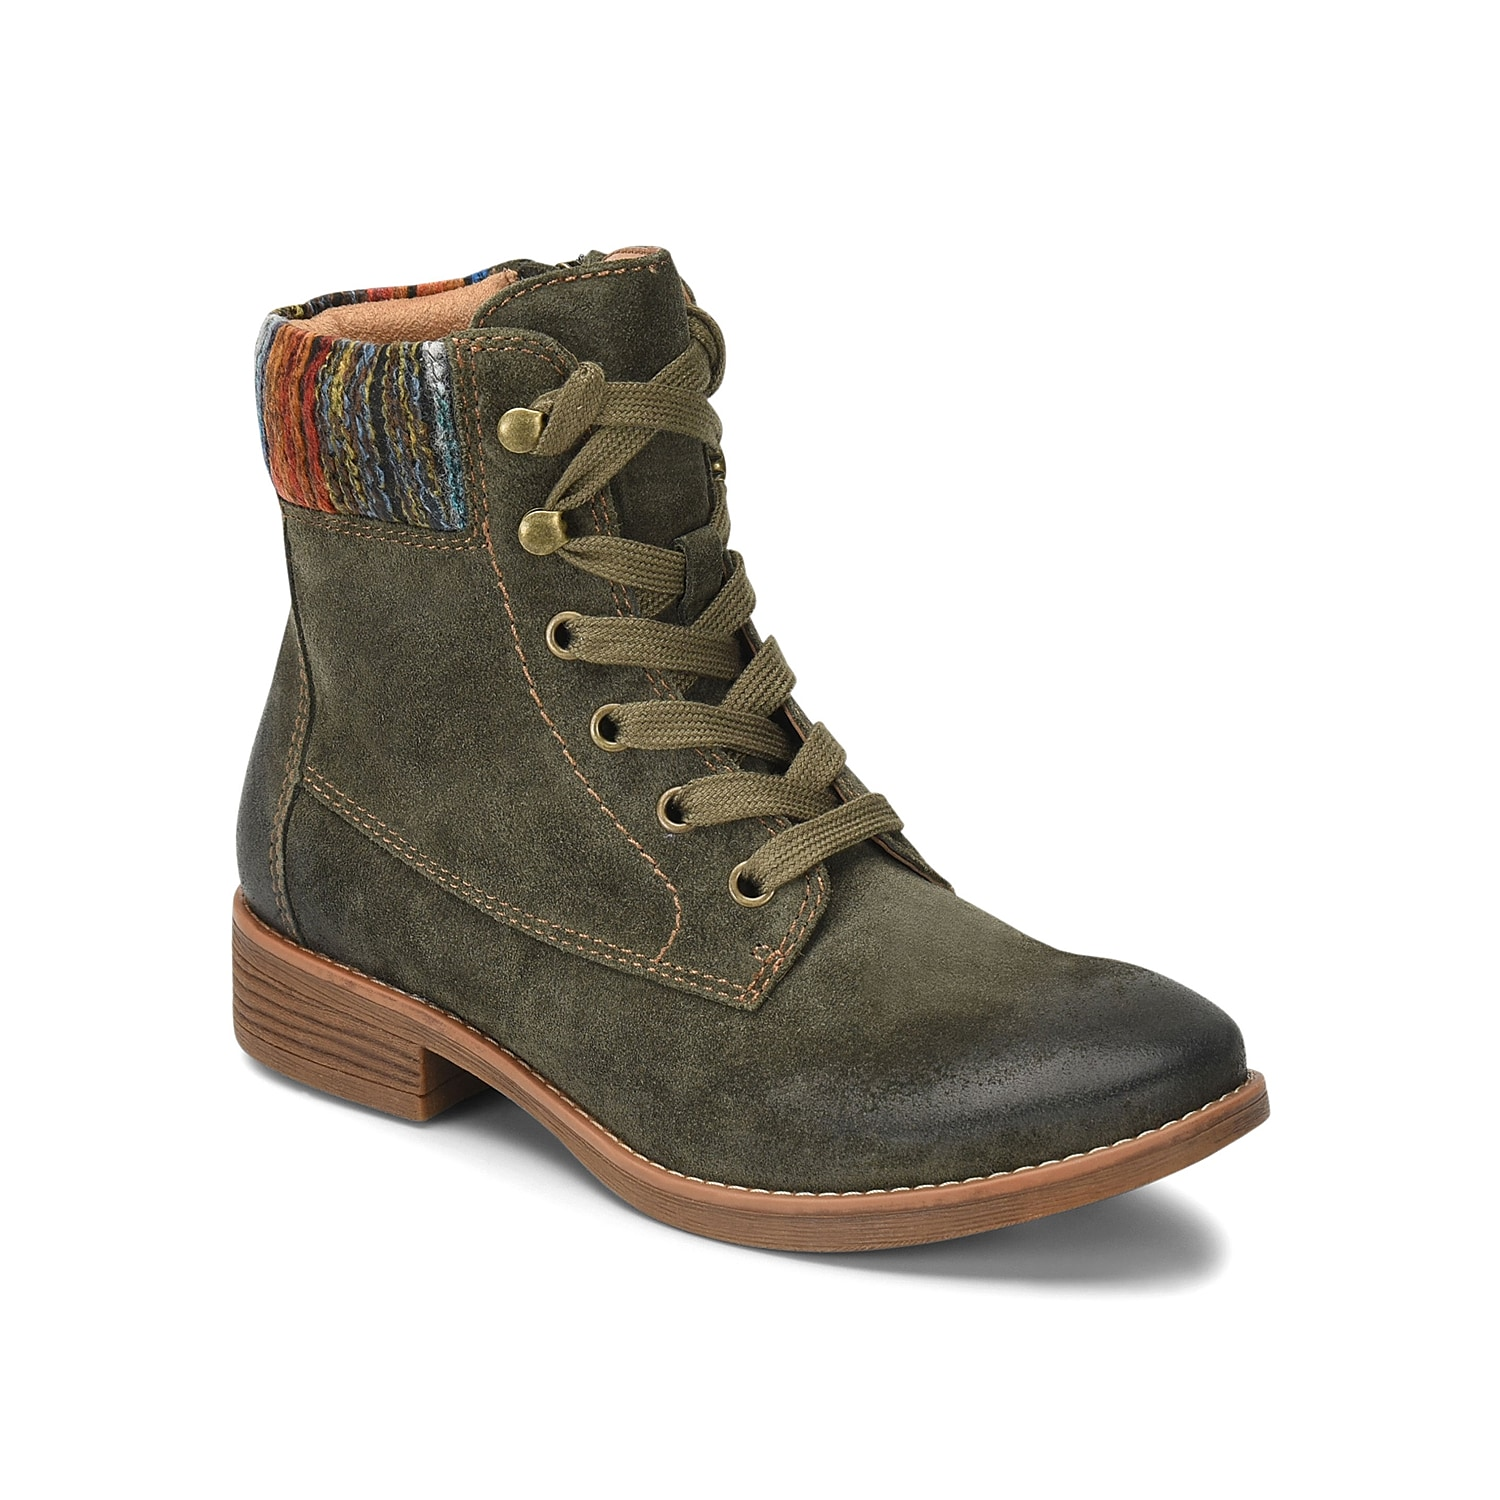 The Trenton combat boot from Comfortiva is a must-have for your rotating wardrobe. The waterproof leather or suede upper, knit collar, and hiker-inspired laces make you weather ready, no matter the season! Click here for Boot Measuring Guide.